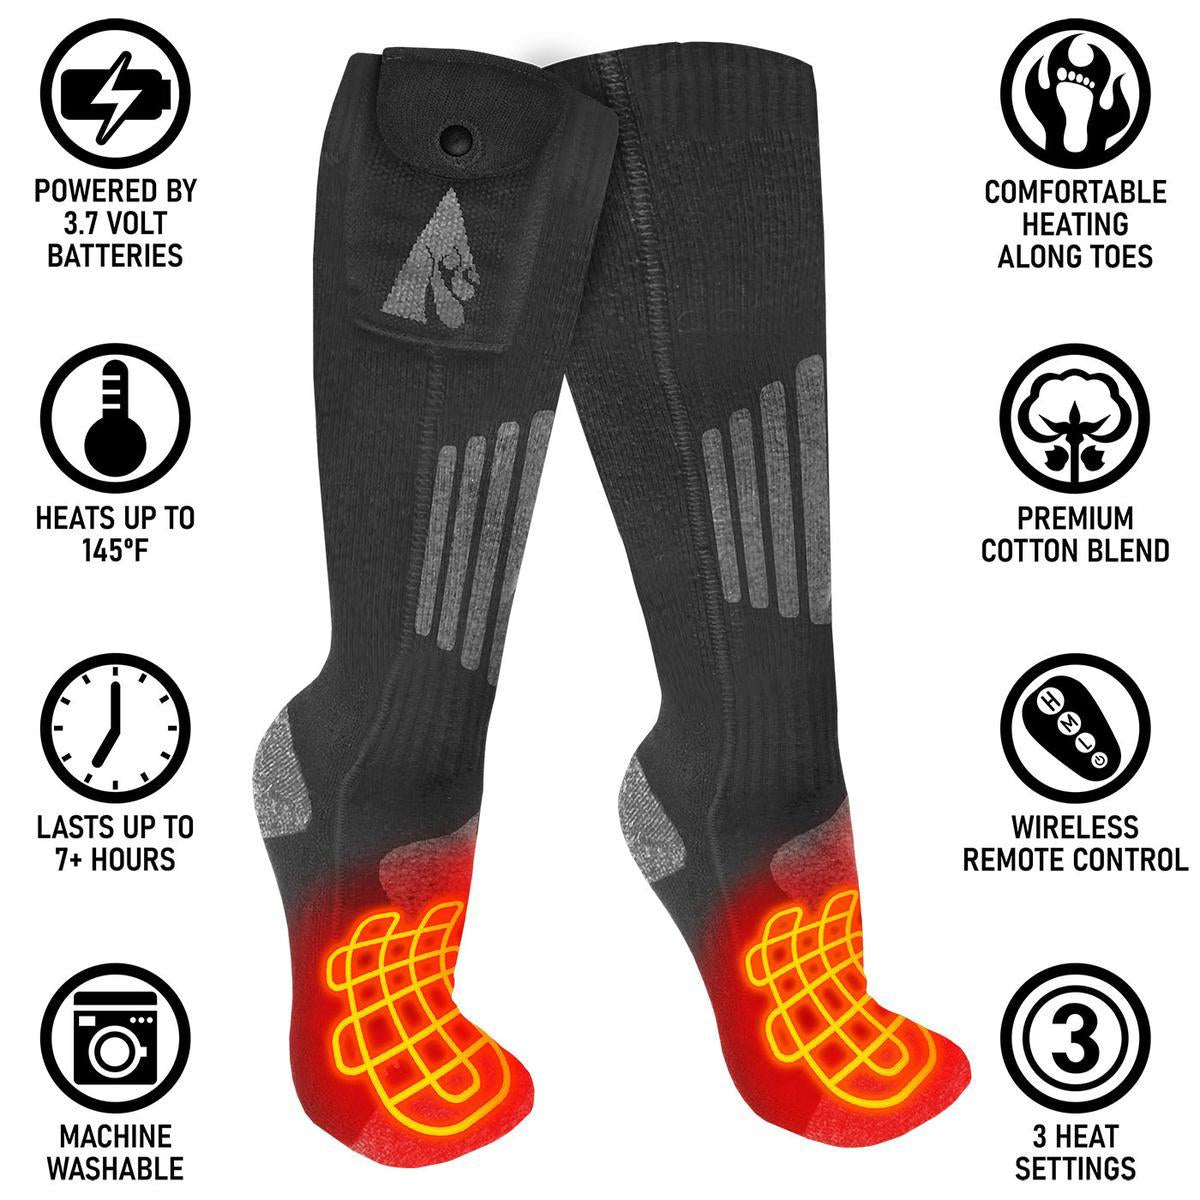 Open Box ActionHeat Cotton 3.7V Rechargeable Heated Socks 2.0 with Remote - Back